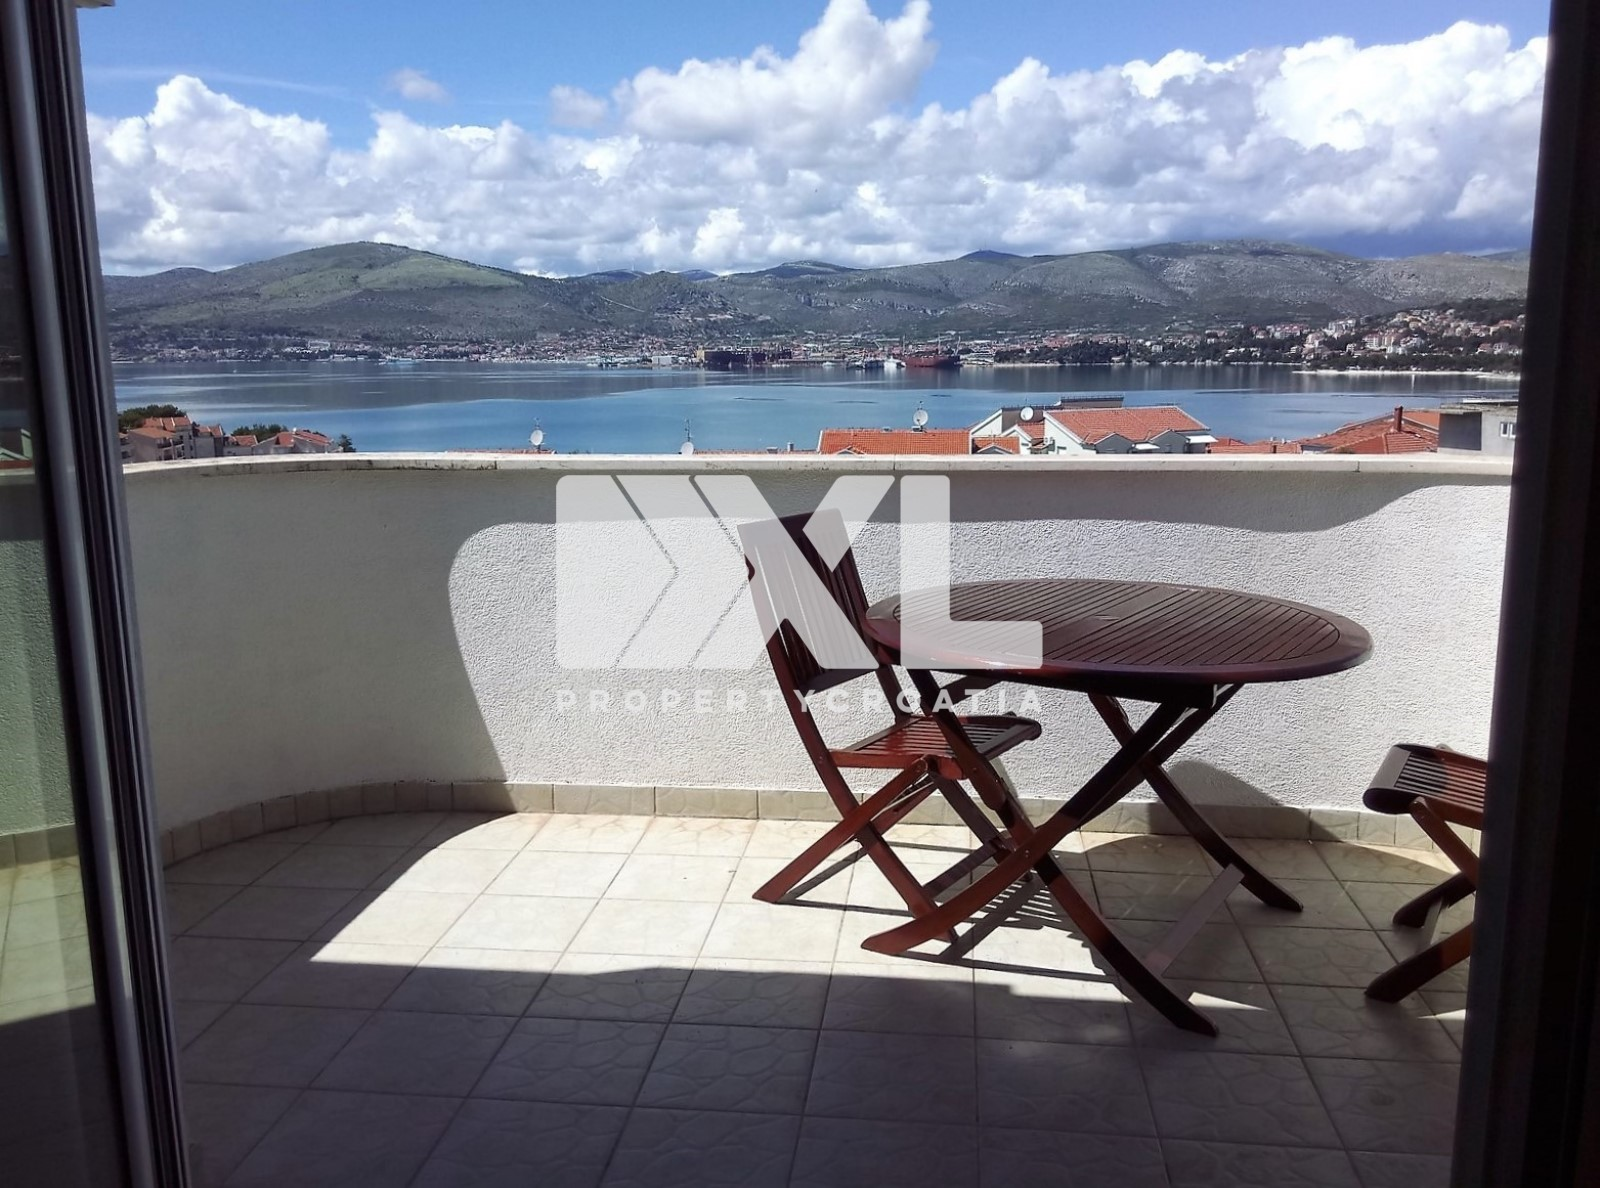 Apartment for sale Ciovo - TG1338AP - sea-view terrace (1)